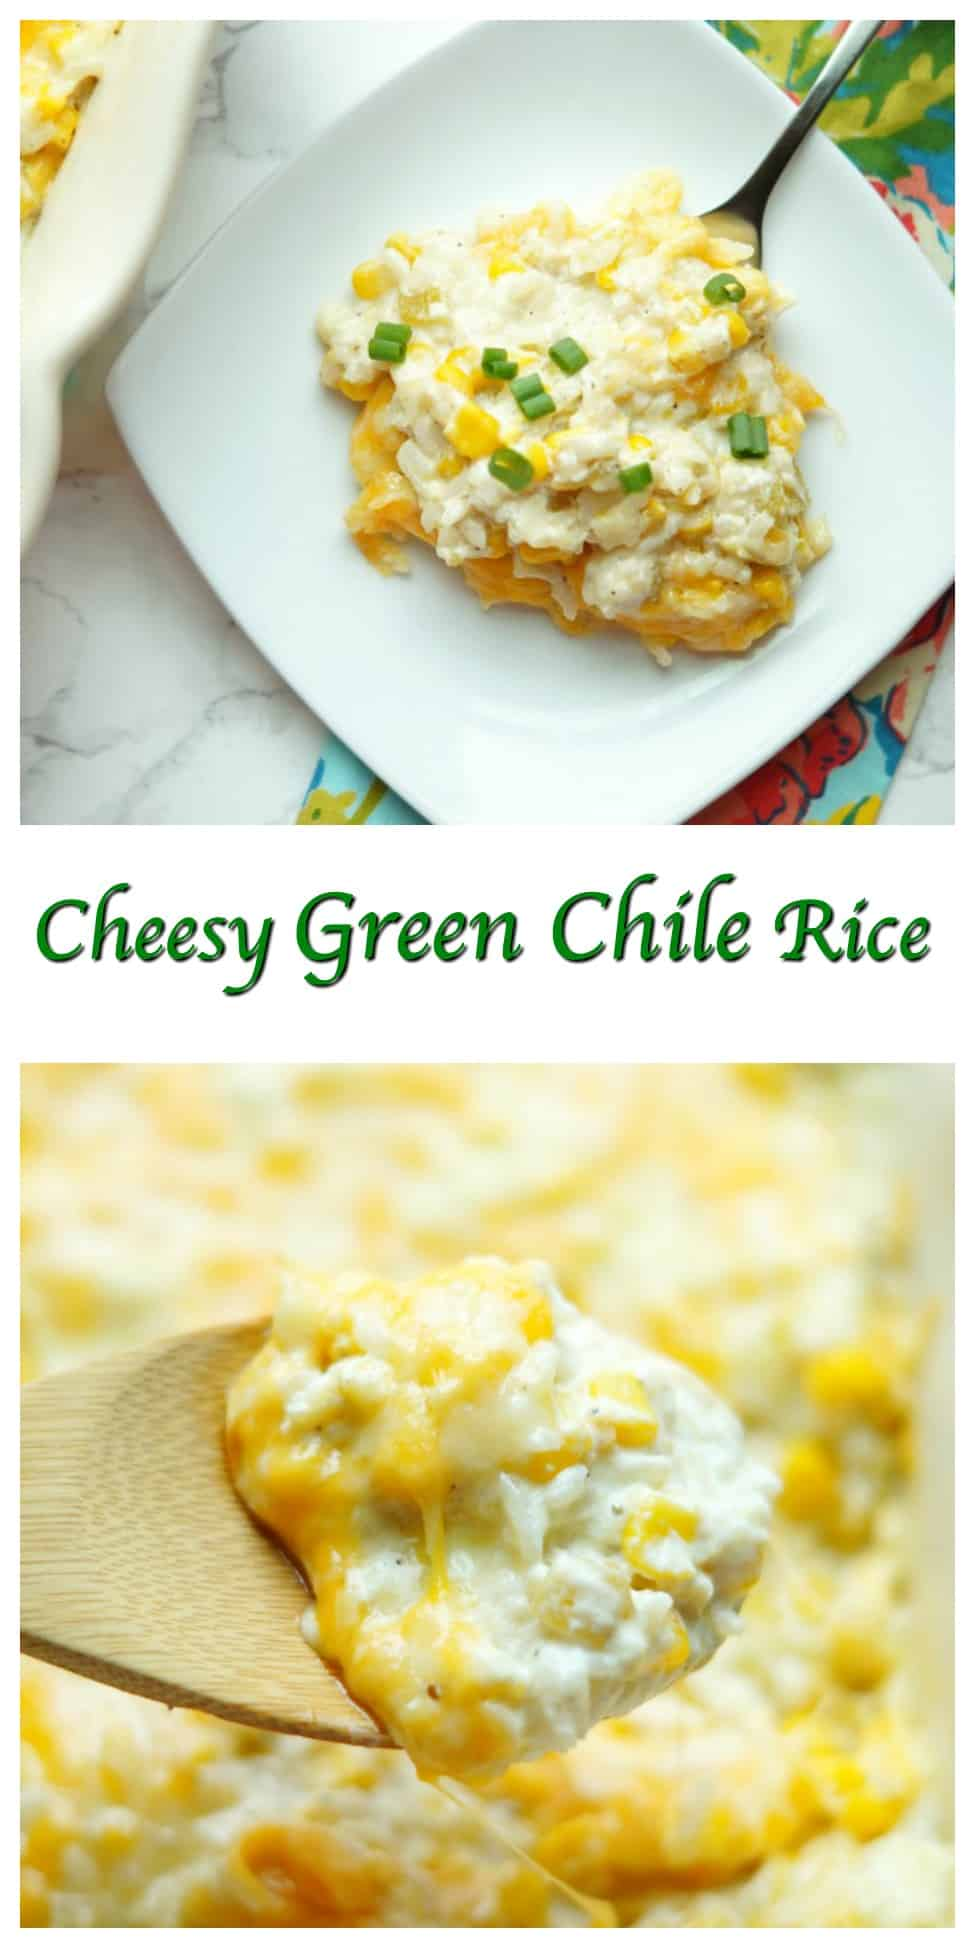 This Cheesy Green Chile Rice is creamy, cheesy, and so tangy from the green chiles! This will definitely be one of your family's new favorite side dishes!